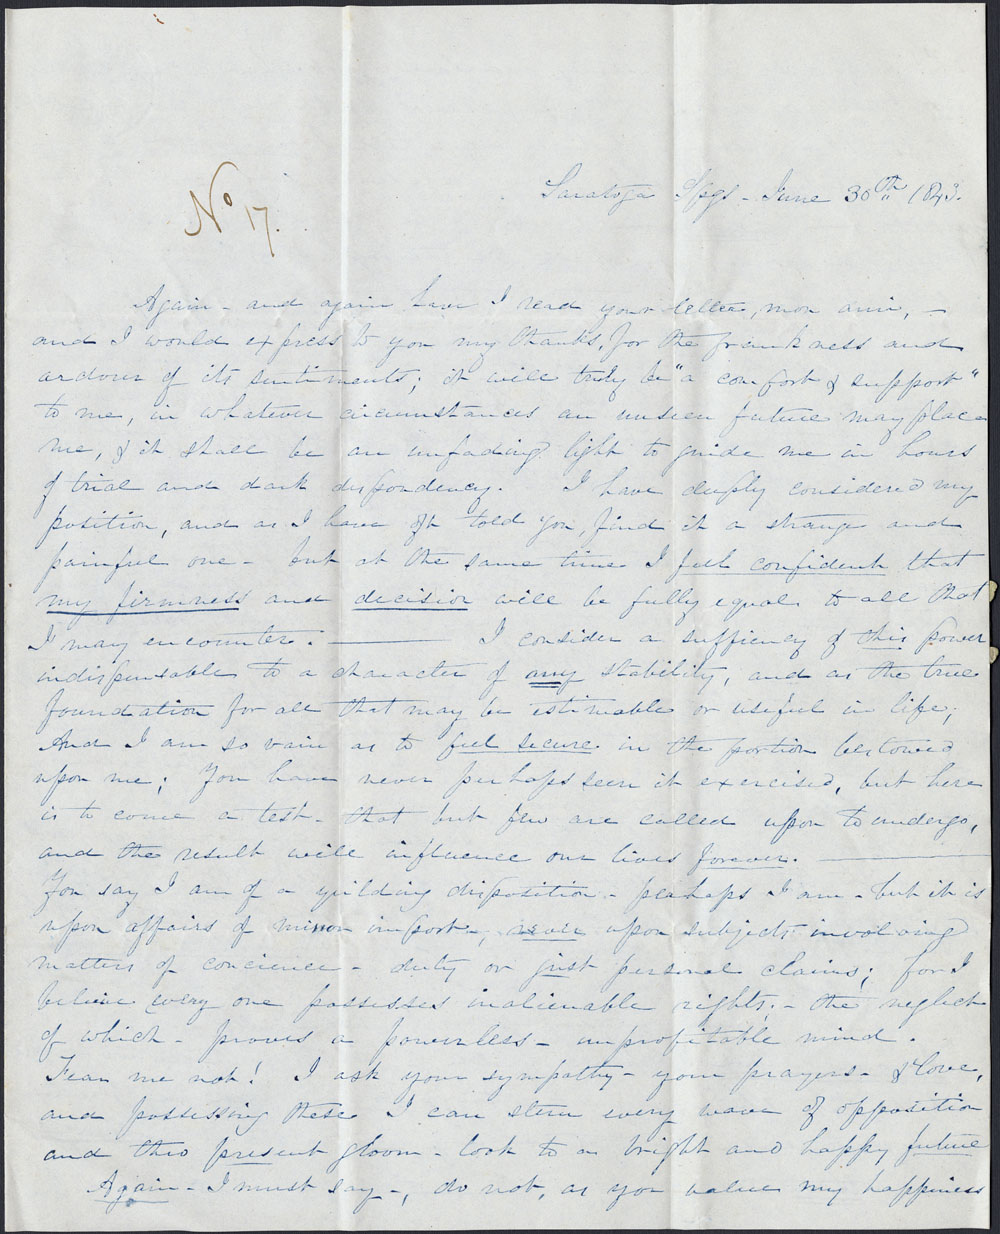 [Correspondance de Mary Westcott] 1843 . (item 7)